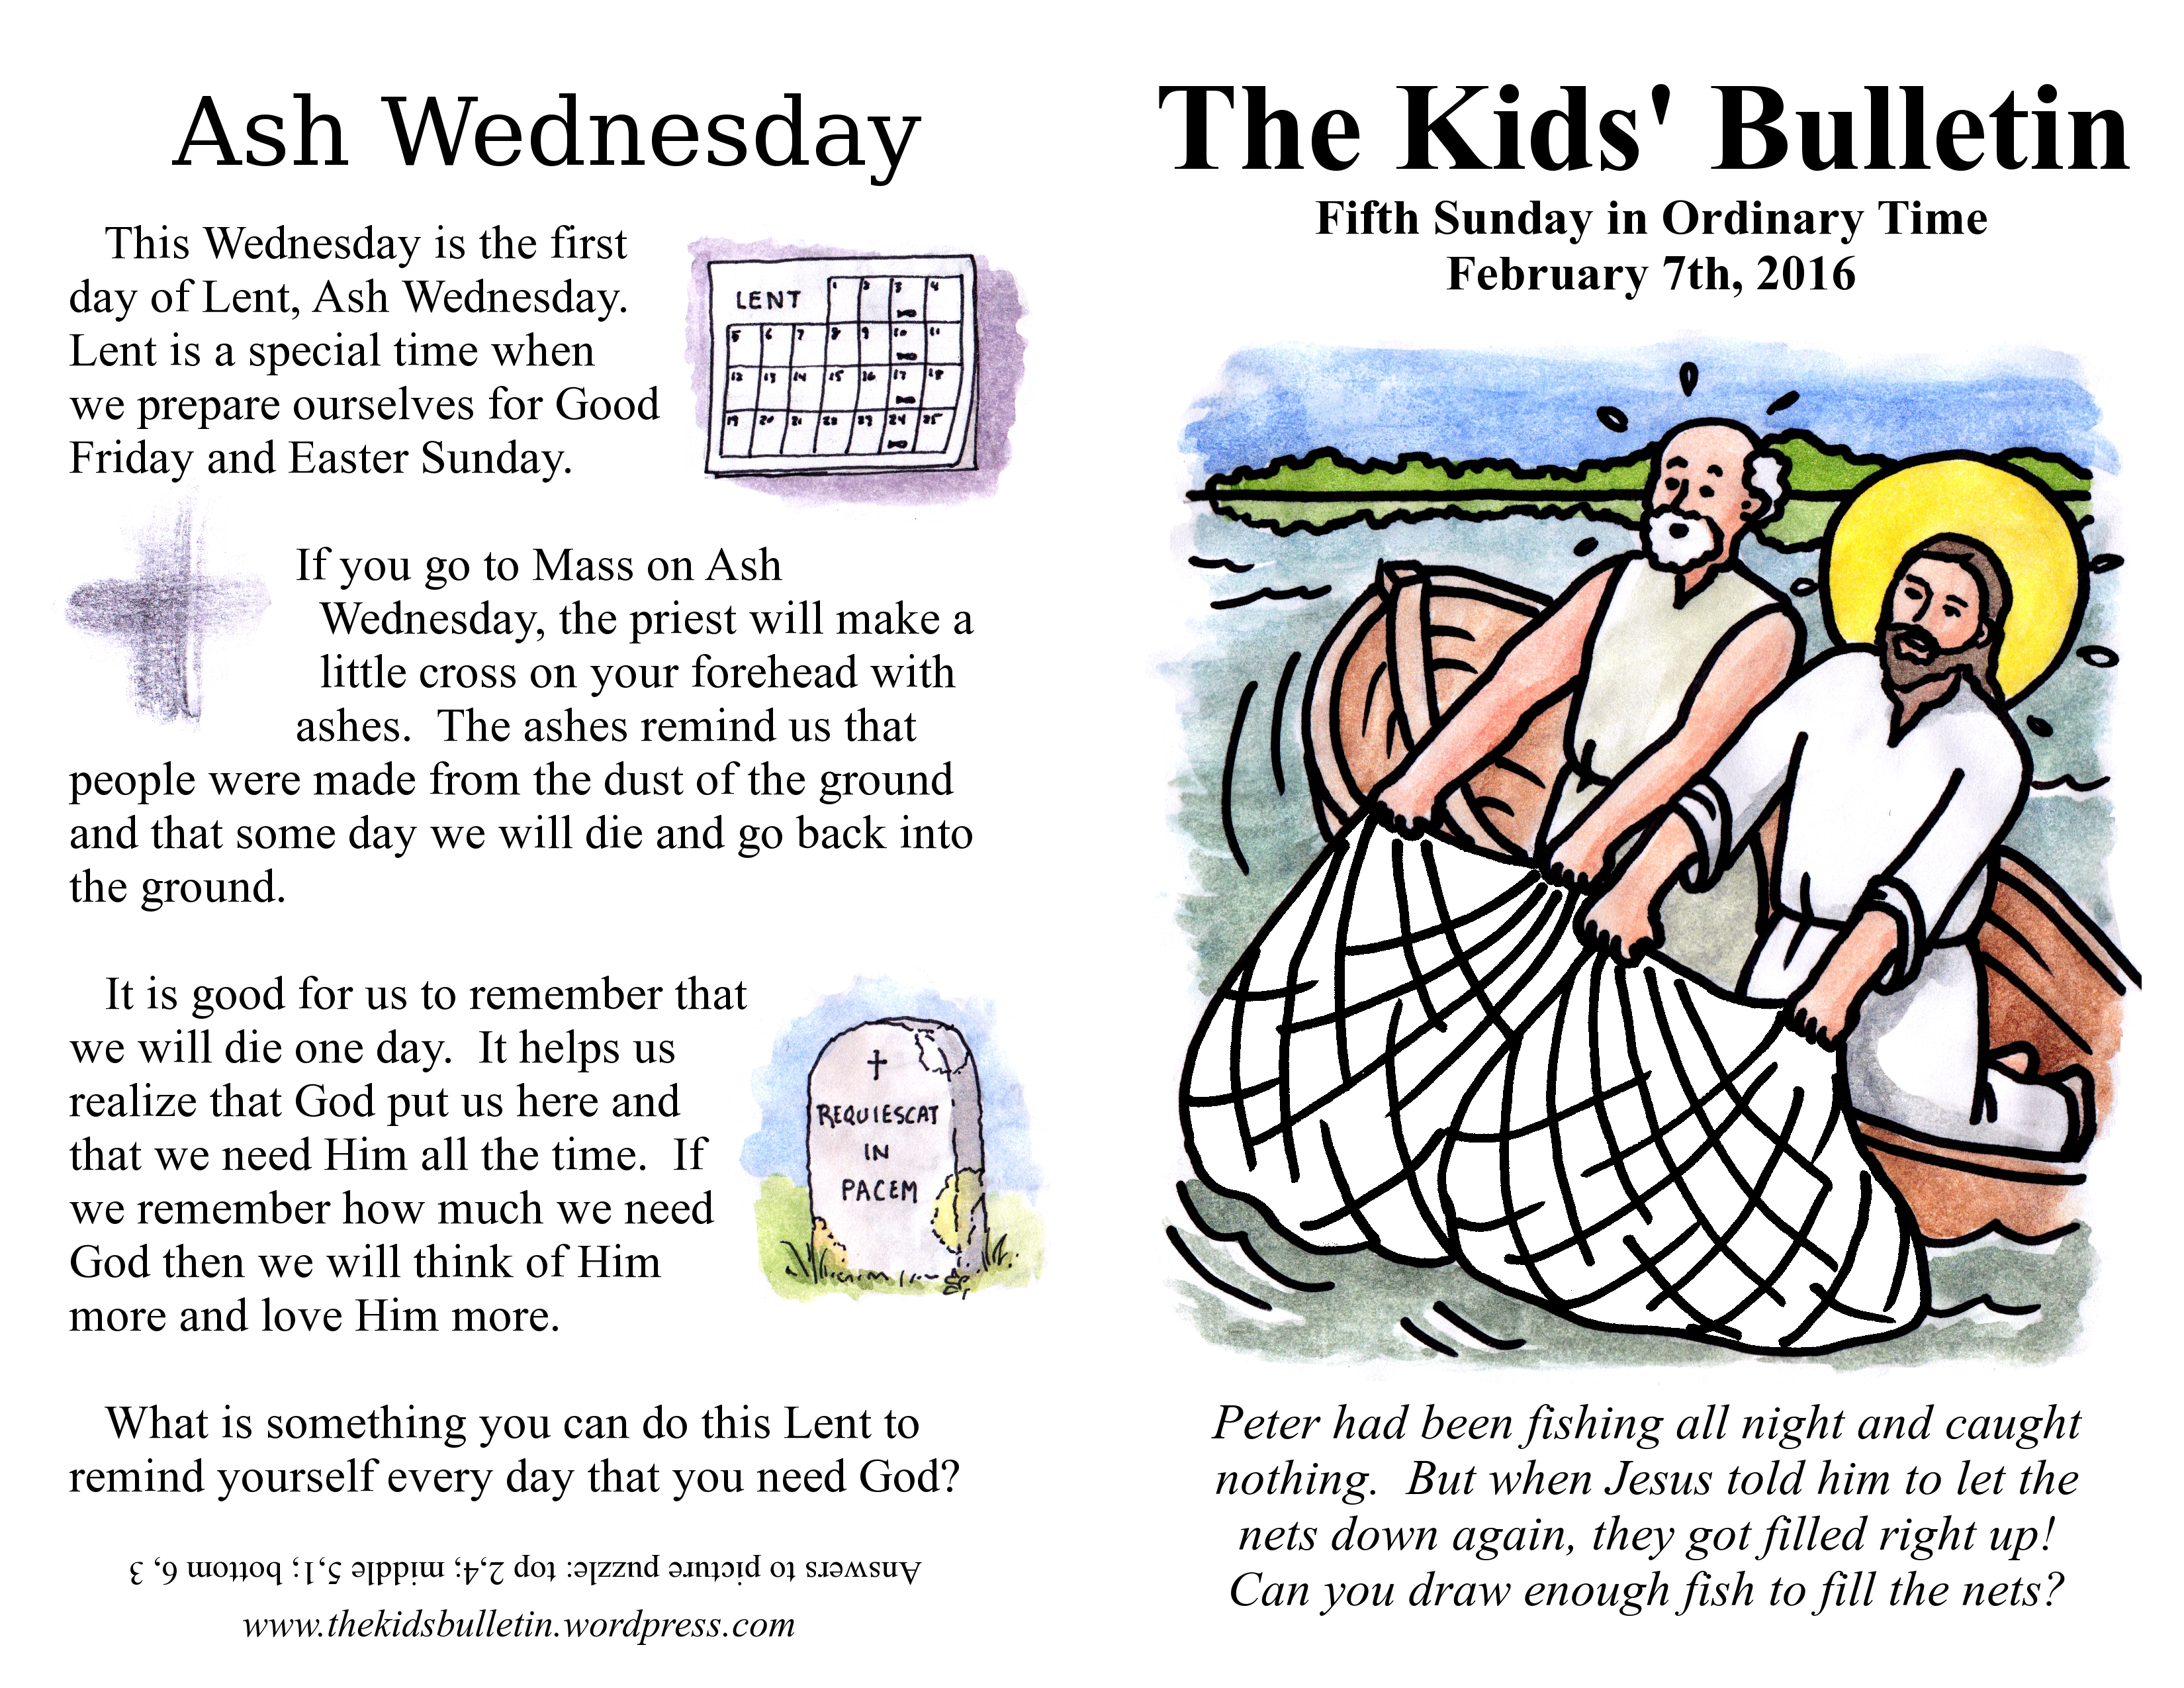 The Kids' Bulletin for Sunday February 7th, 2016 | The Kids ...